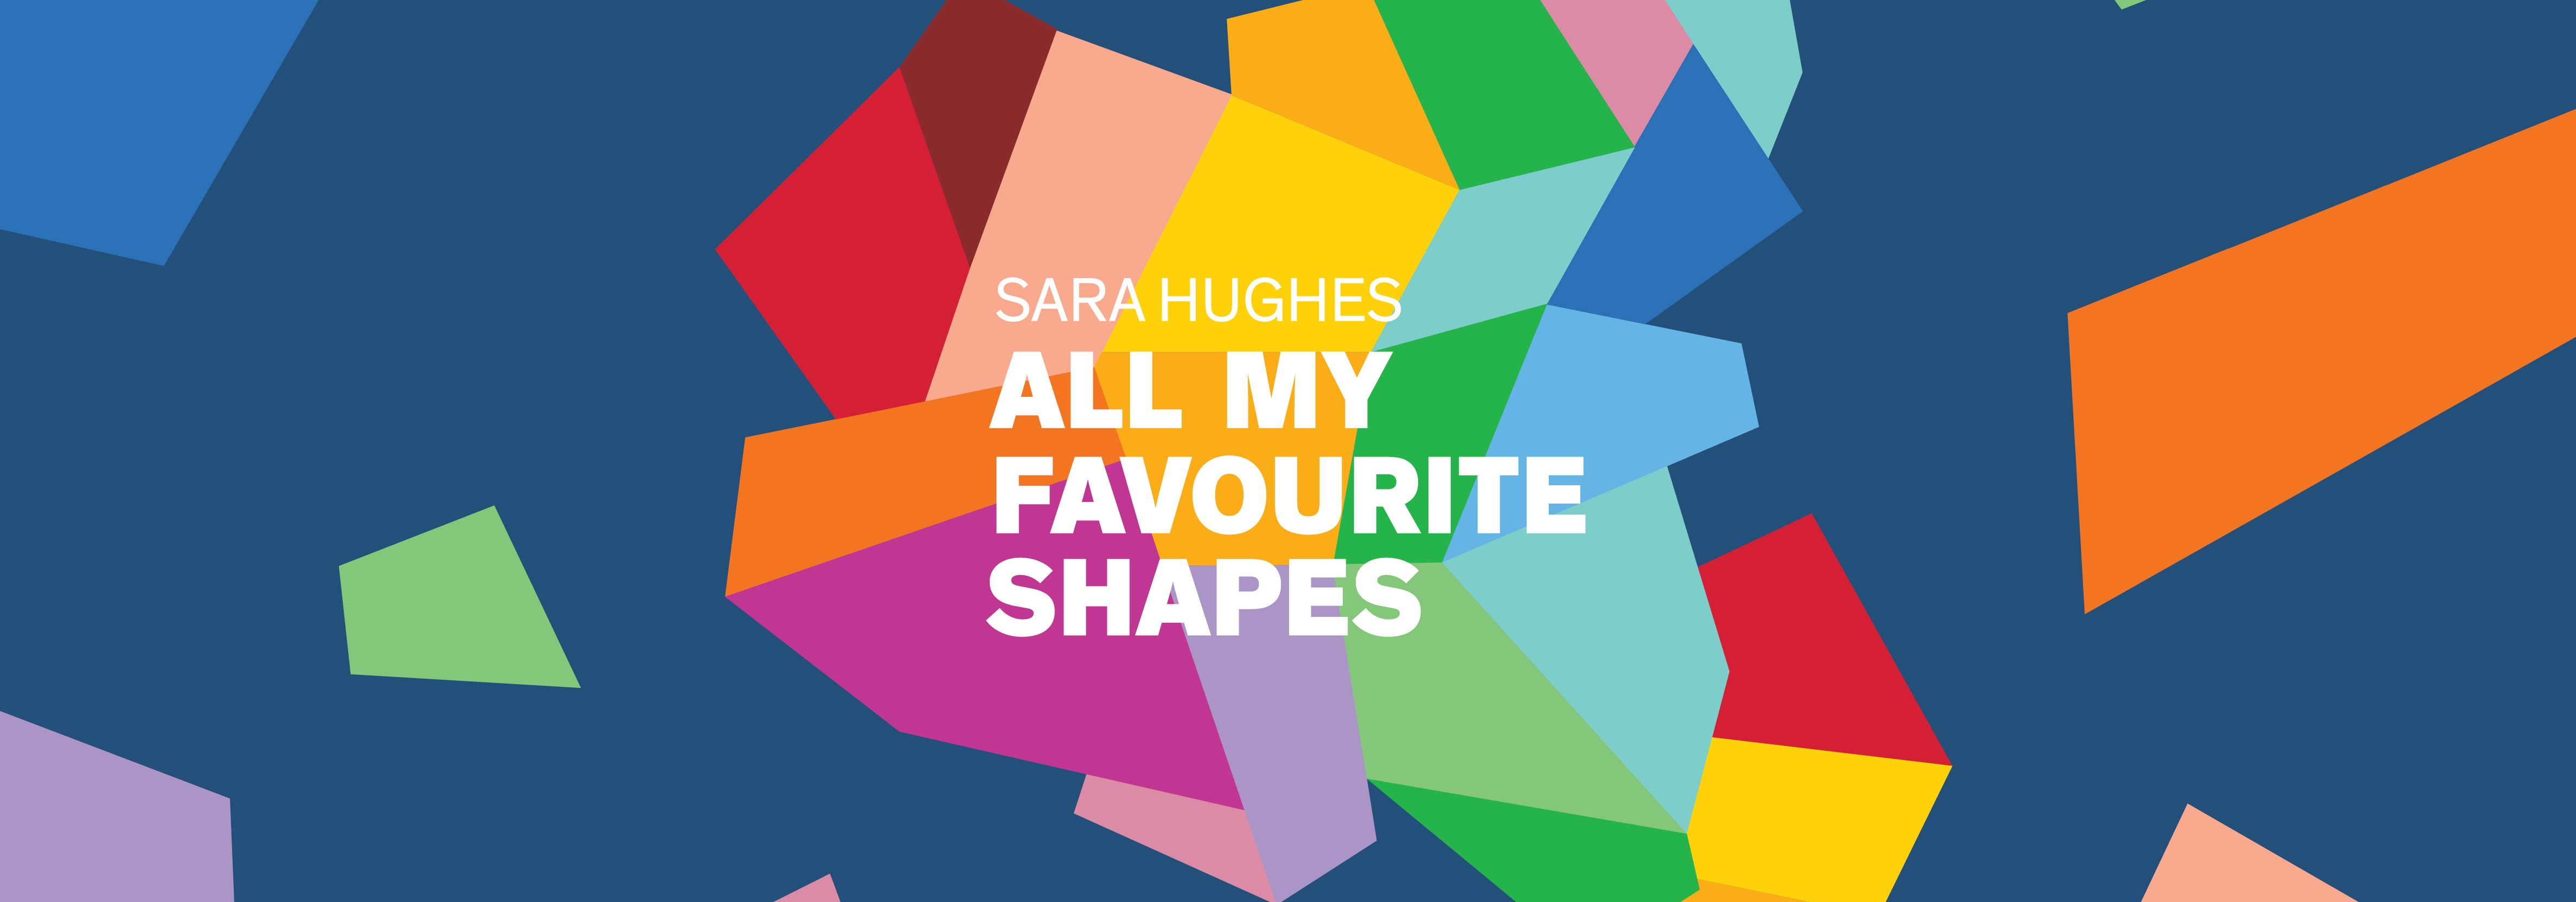 Sara Hughes: All My Favourite Shapes